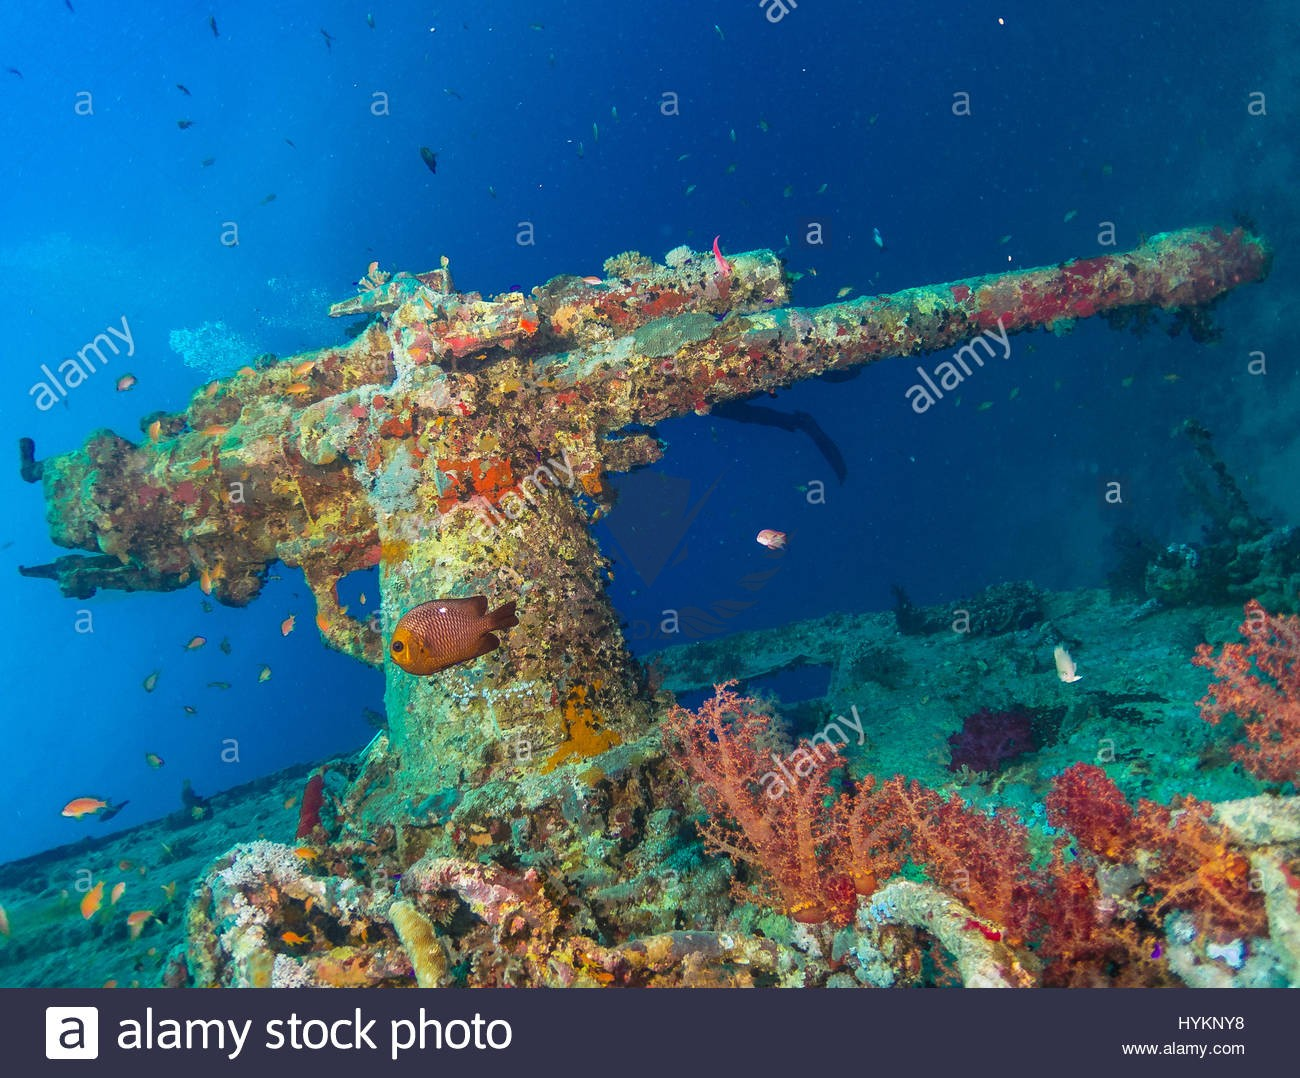 red-sea-egypt-picture-of-a-mounted-gun-incredible-images-show-vehicles-HYKNY8.jpg